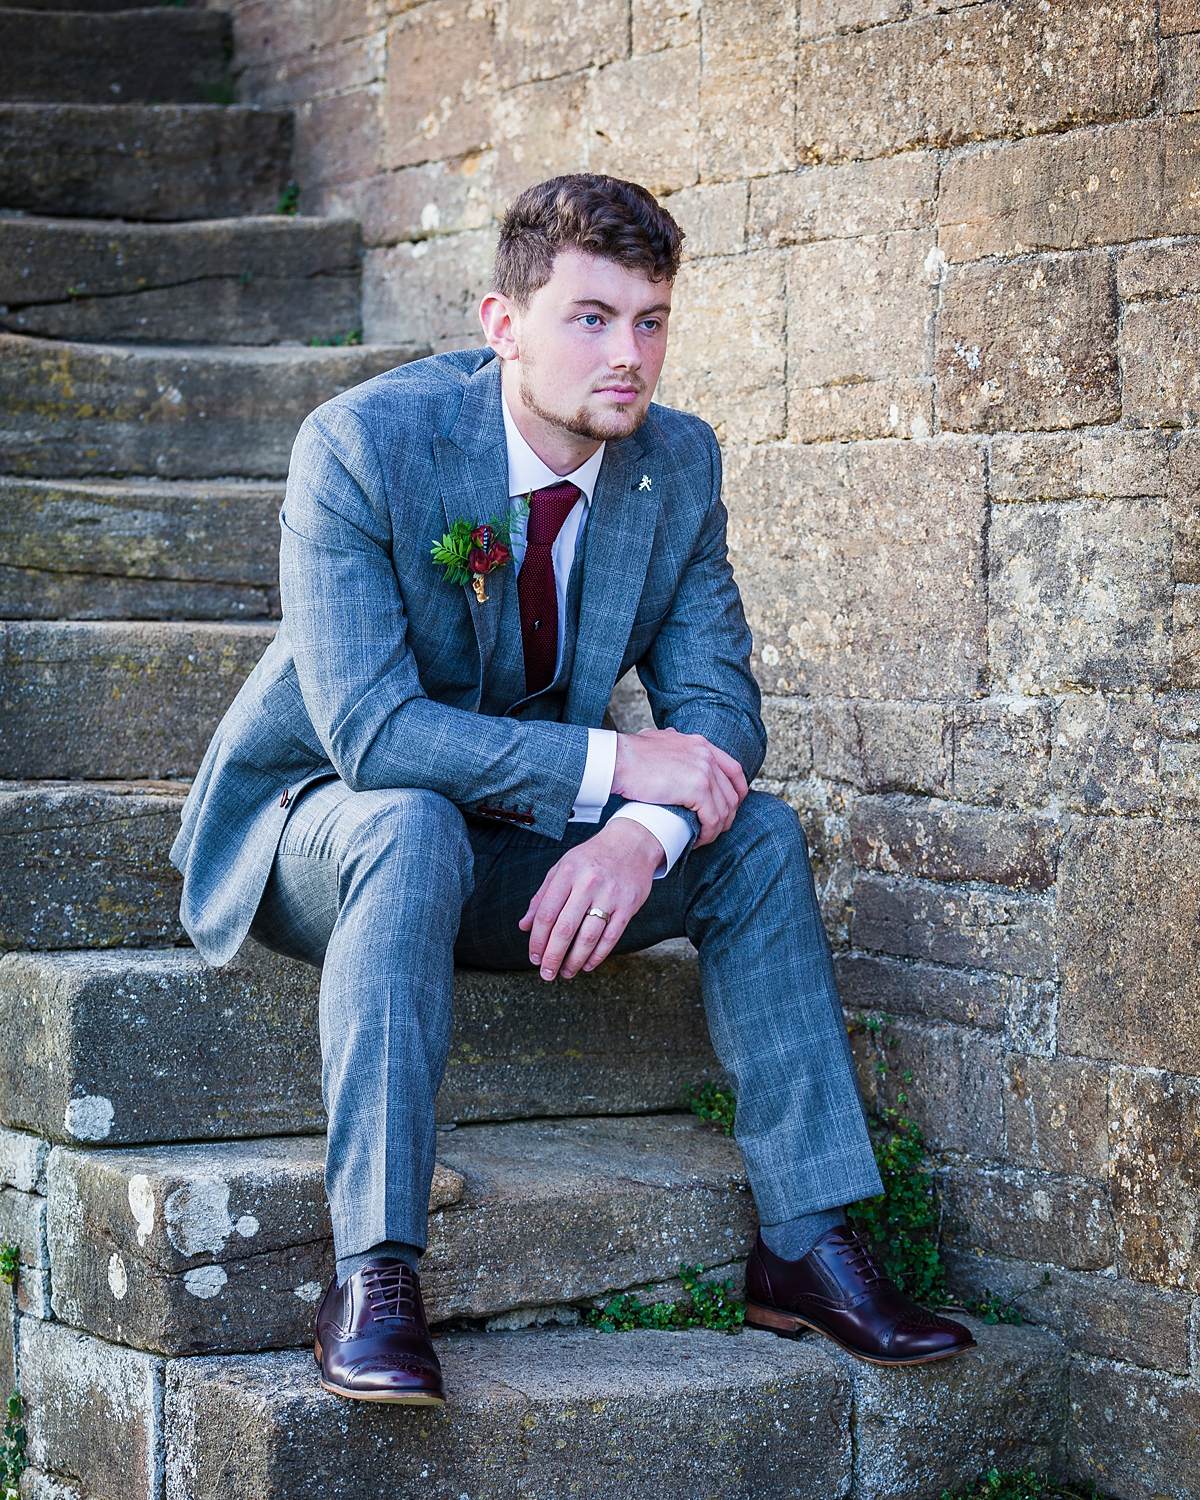 Customers showcasing Astares menswear wedding suits | Astares